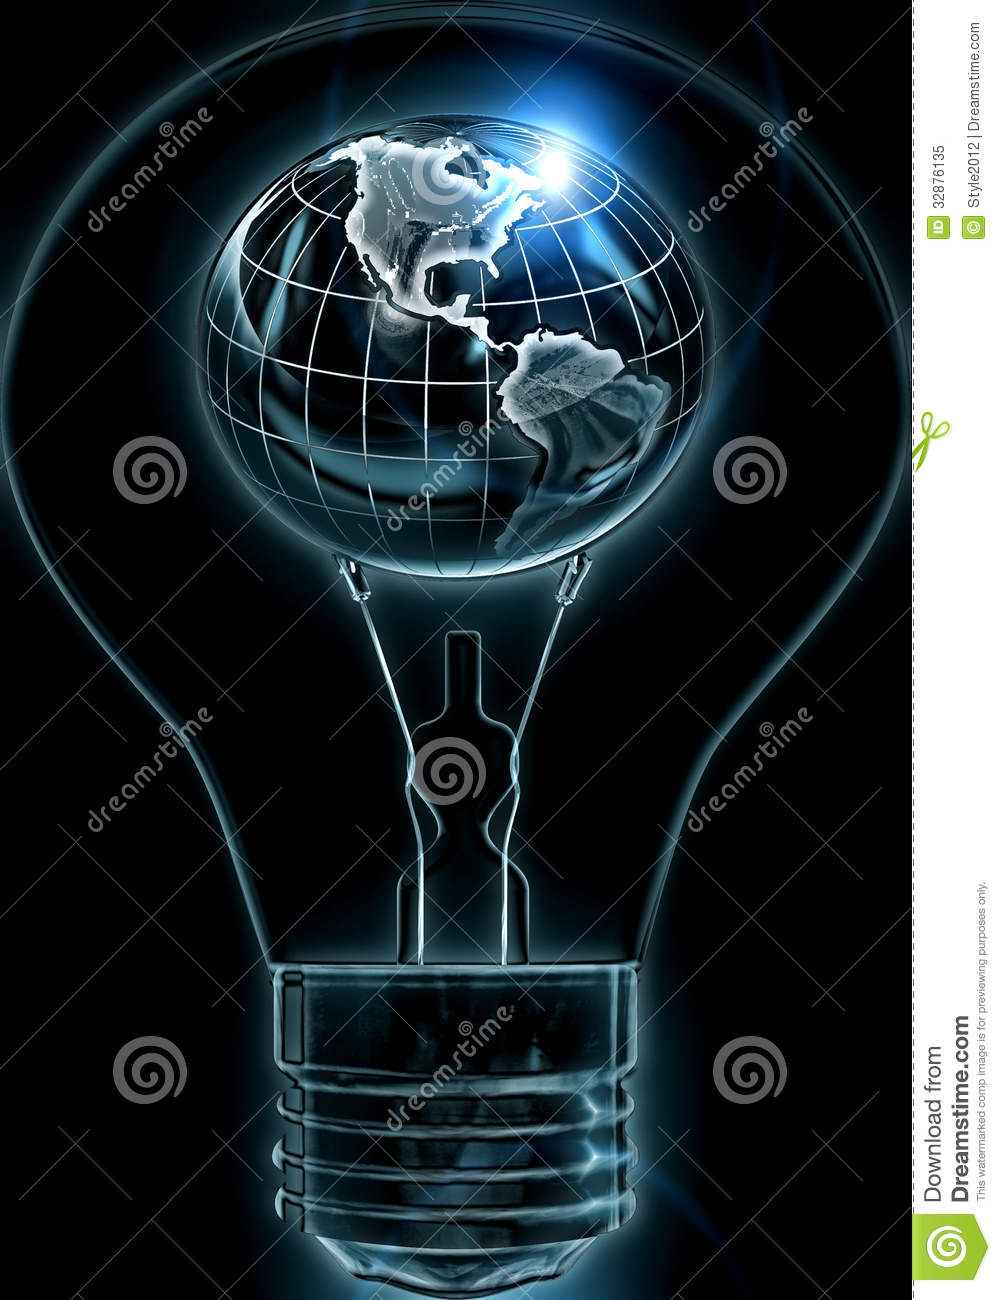 Great ideas can move the world stock illustration image for Great wallpaper ideas